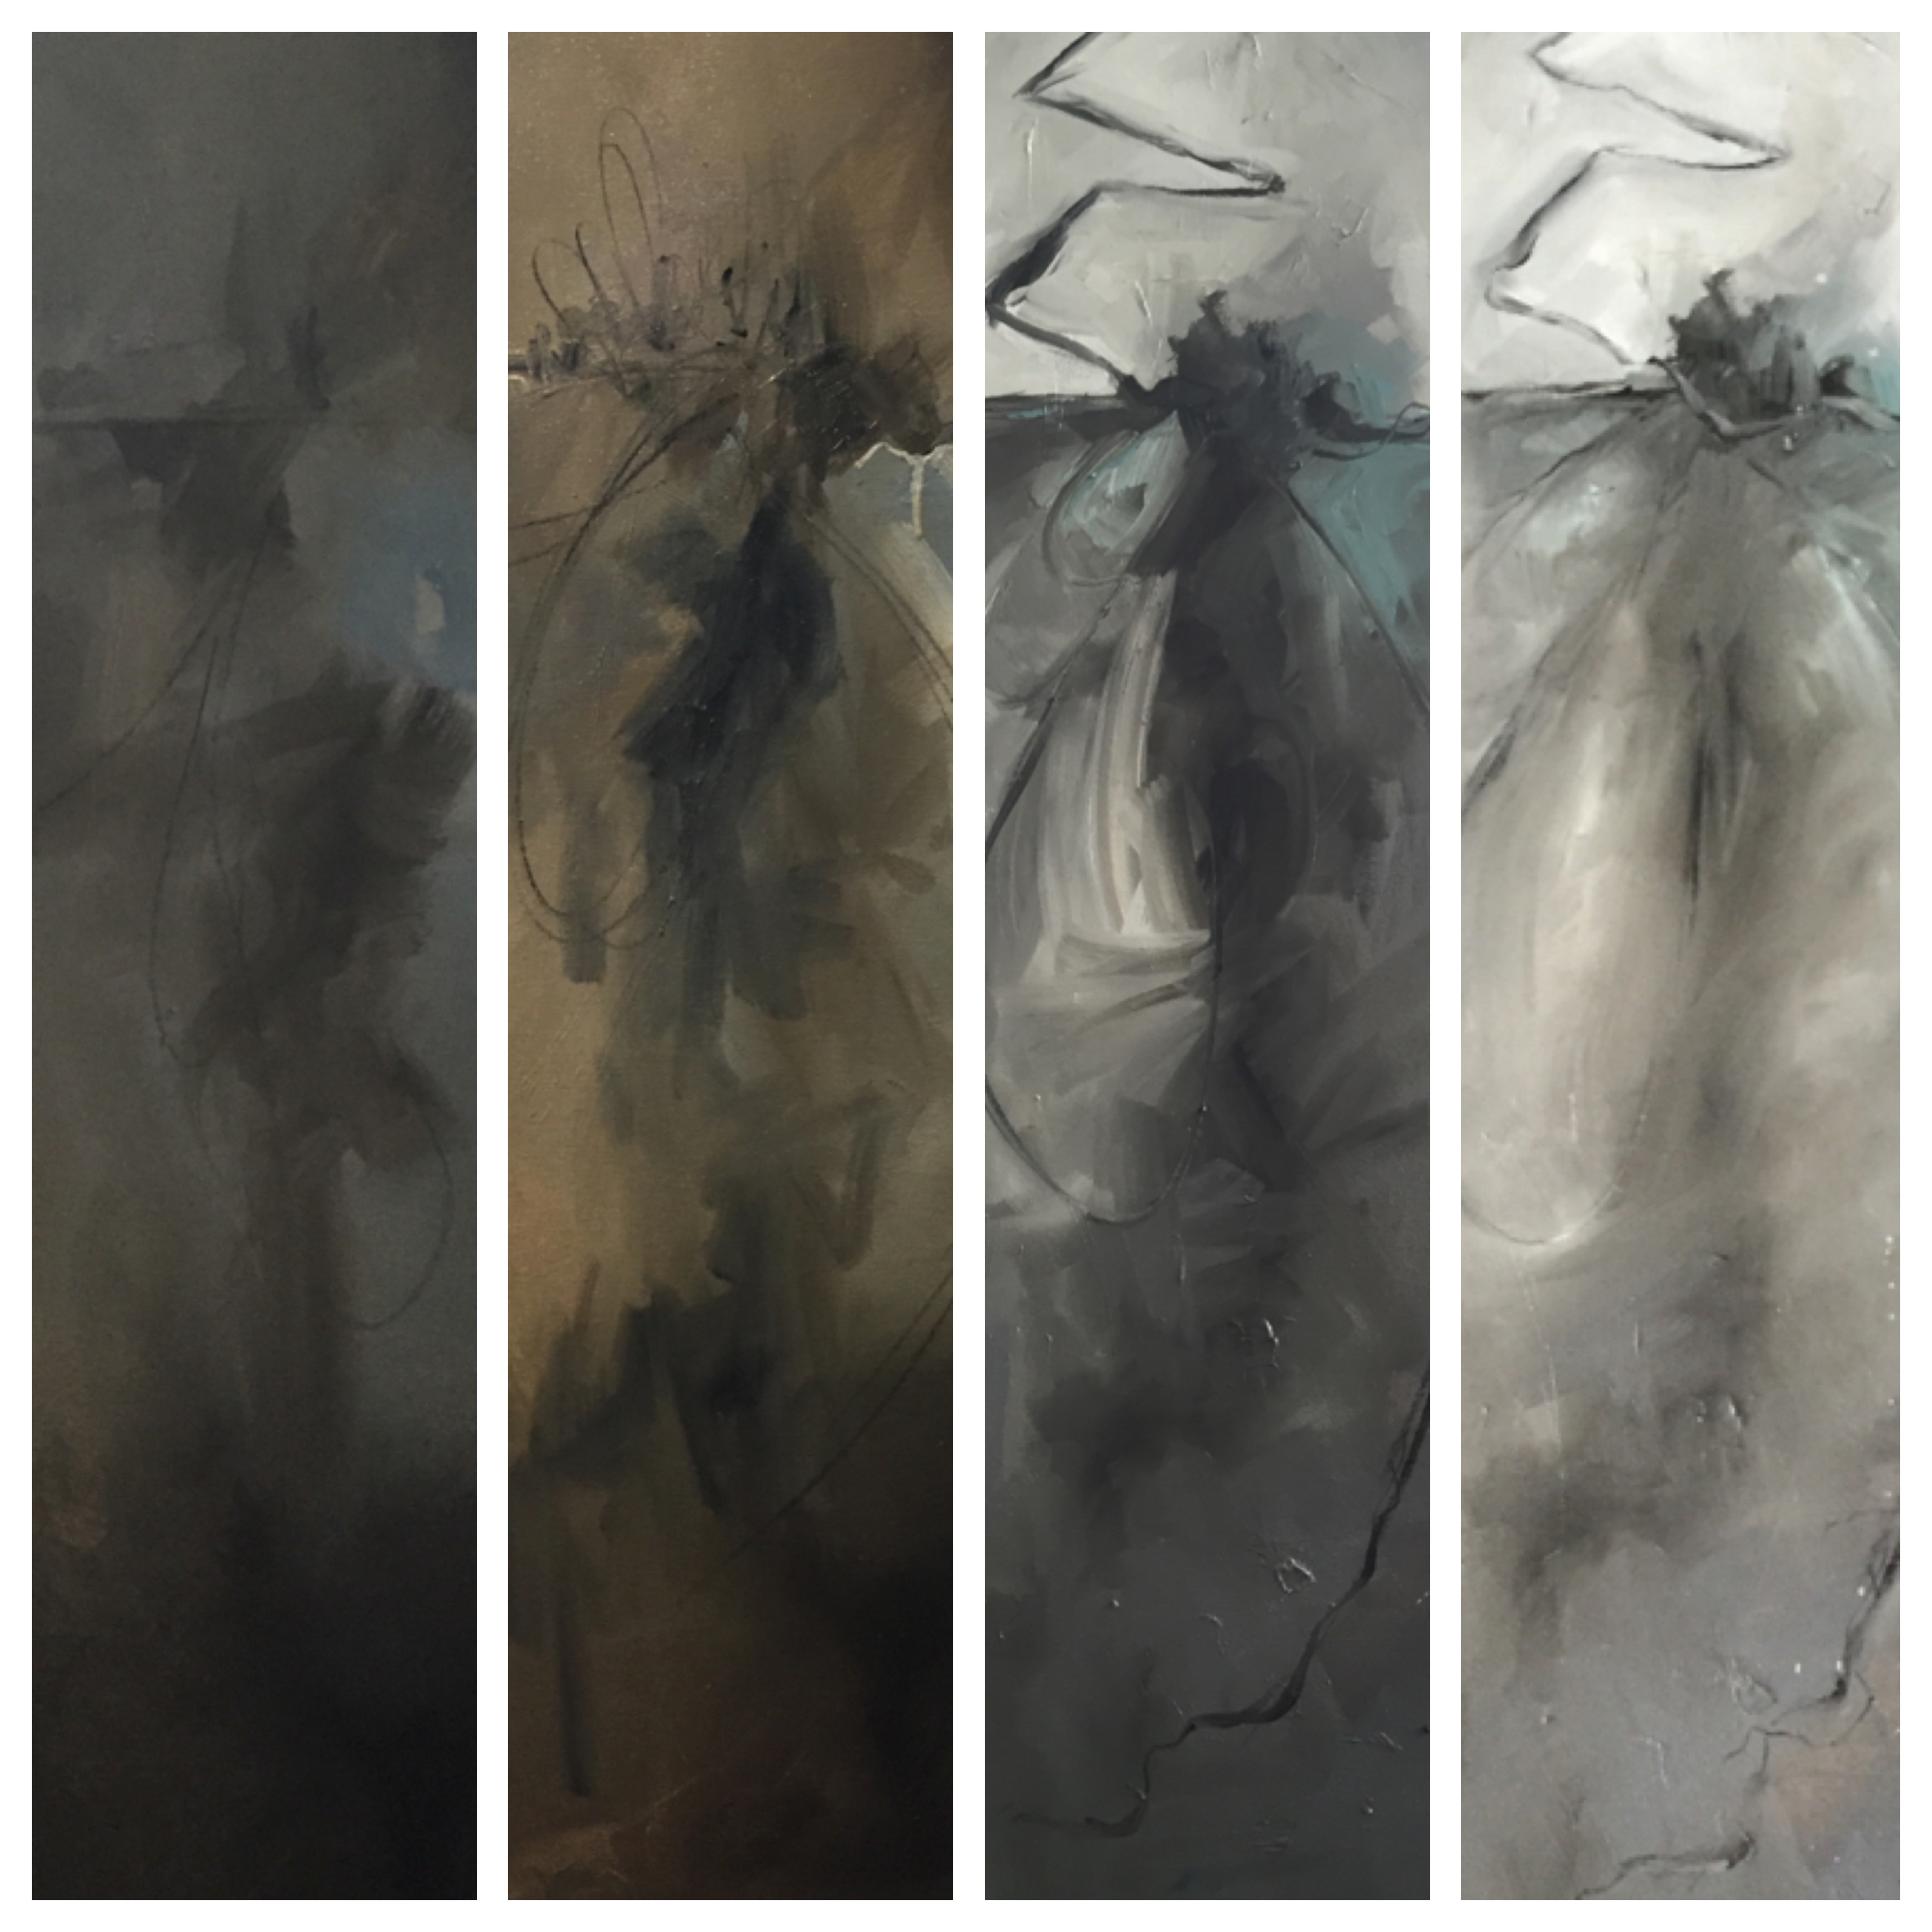 Progression of an idea - Abstract Art by Lauren Bolshakov